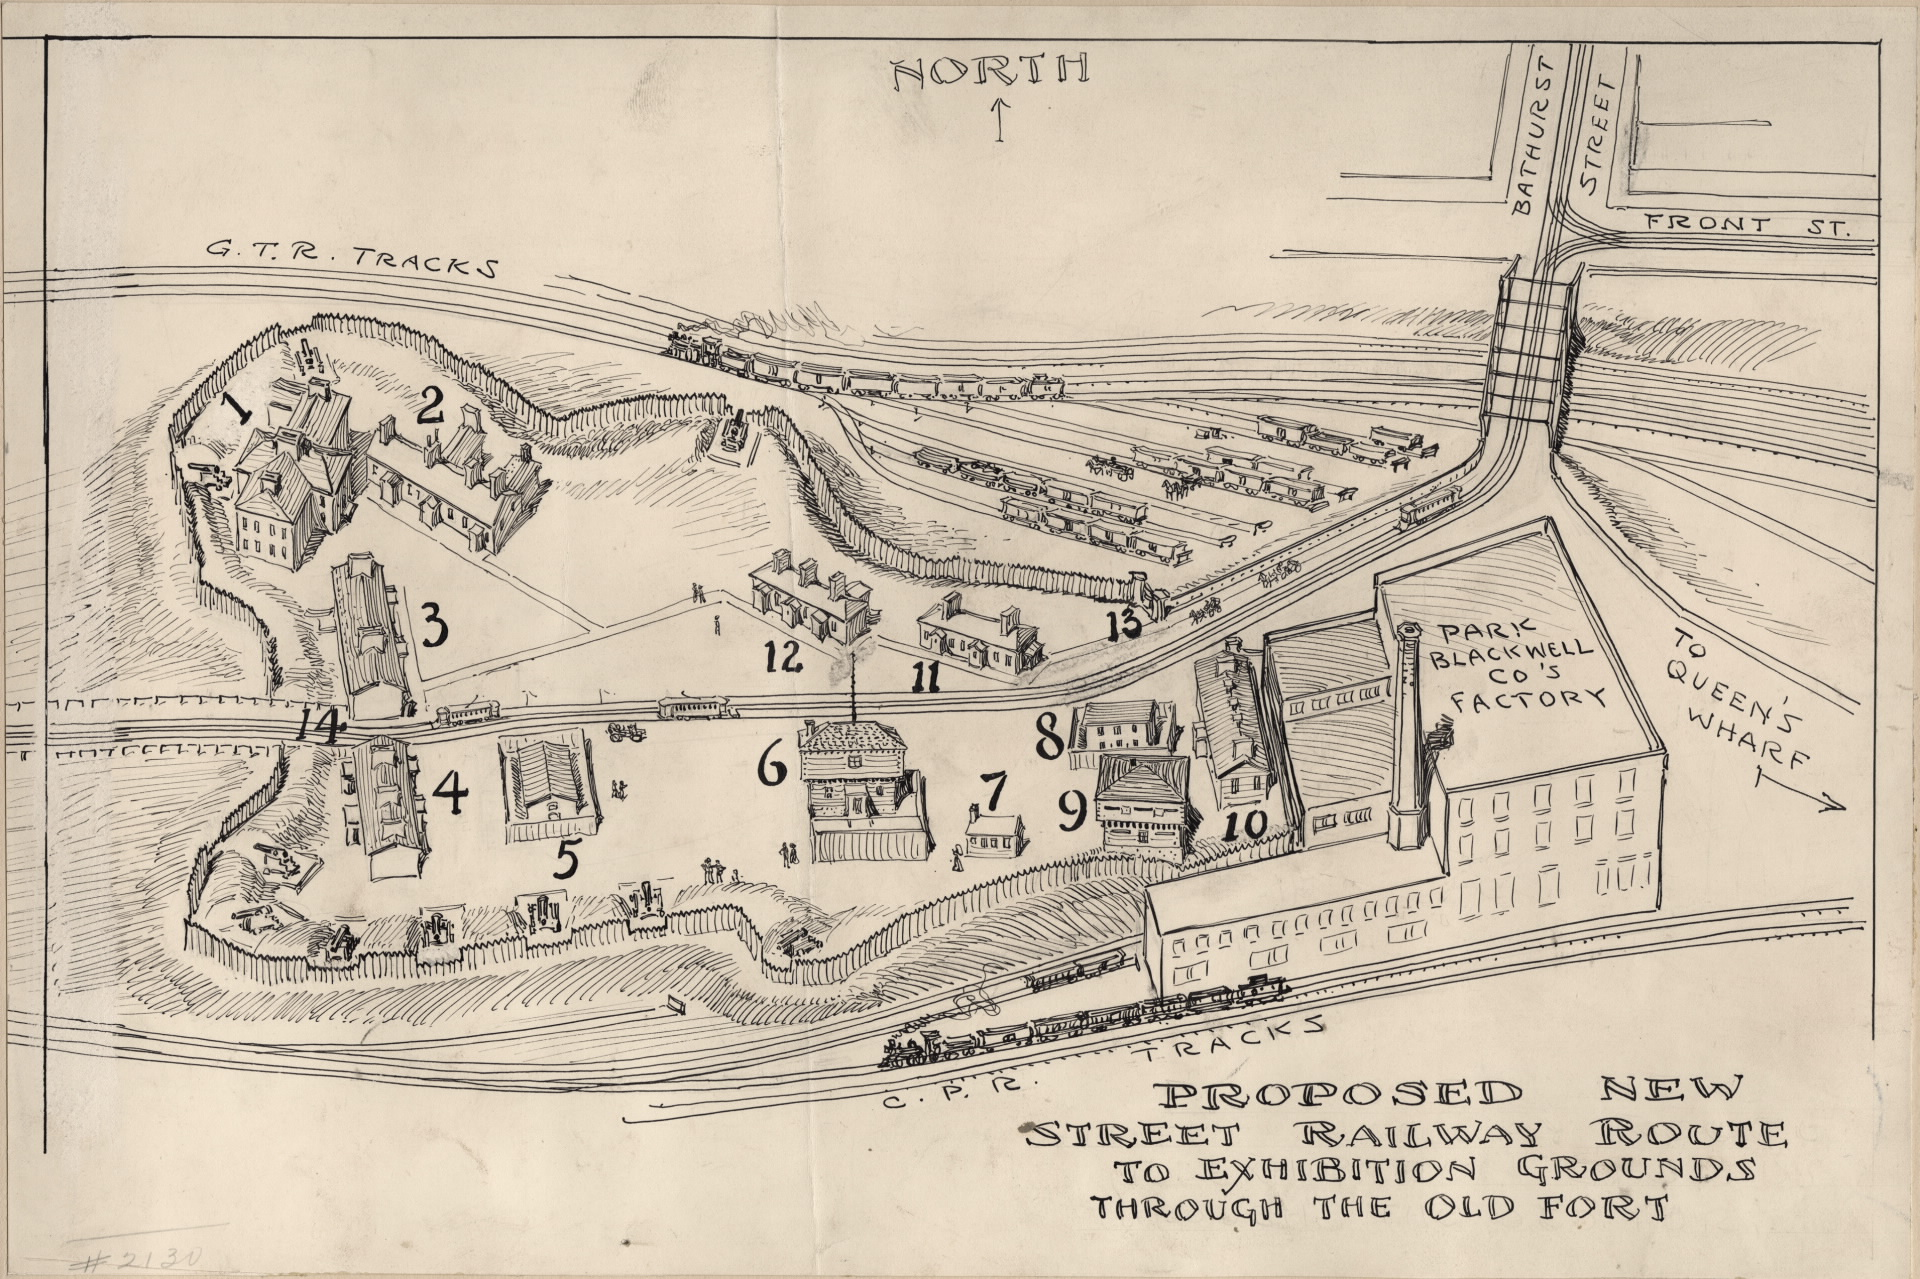 Garrison New York Map.Fort York And Garrison Common Maps 1905 Staples Proposed New